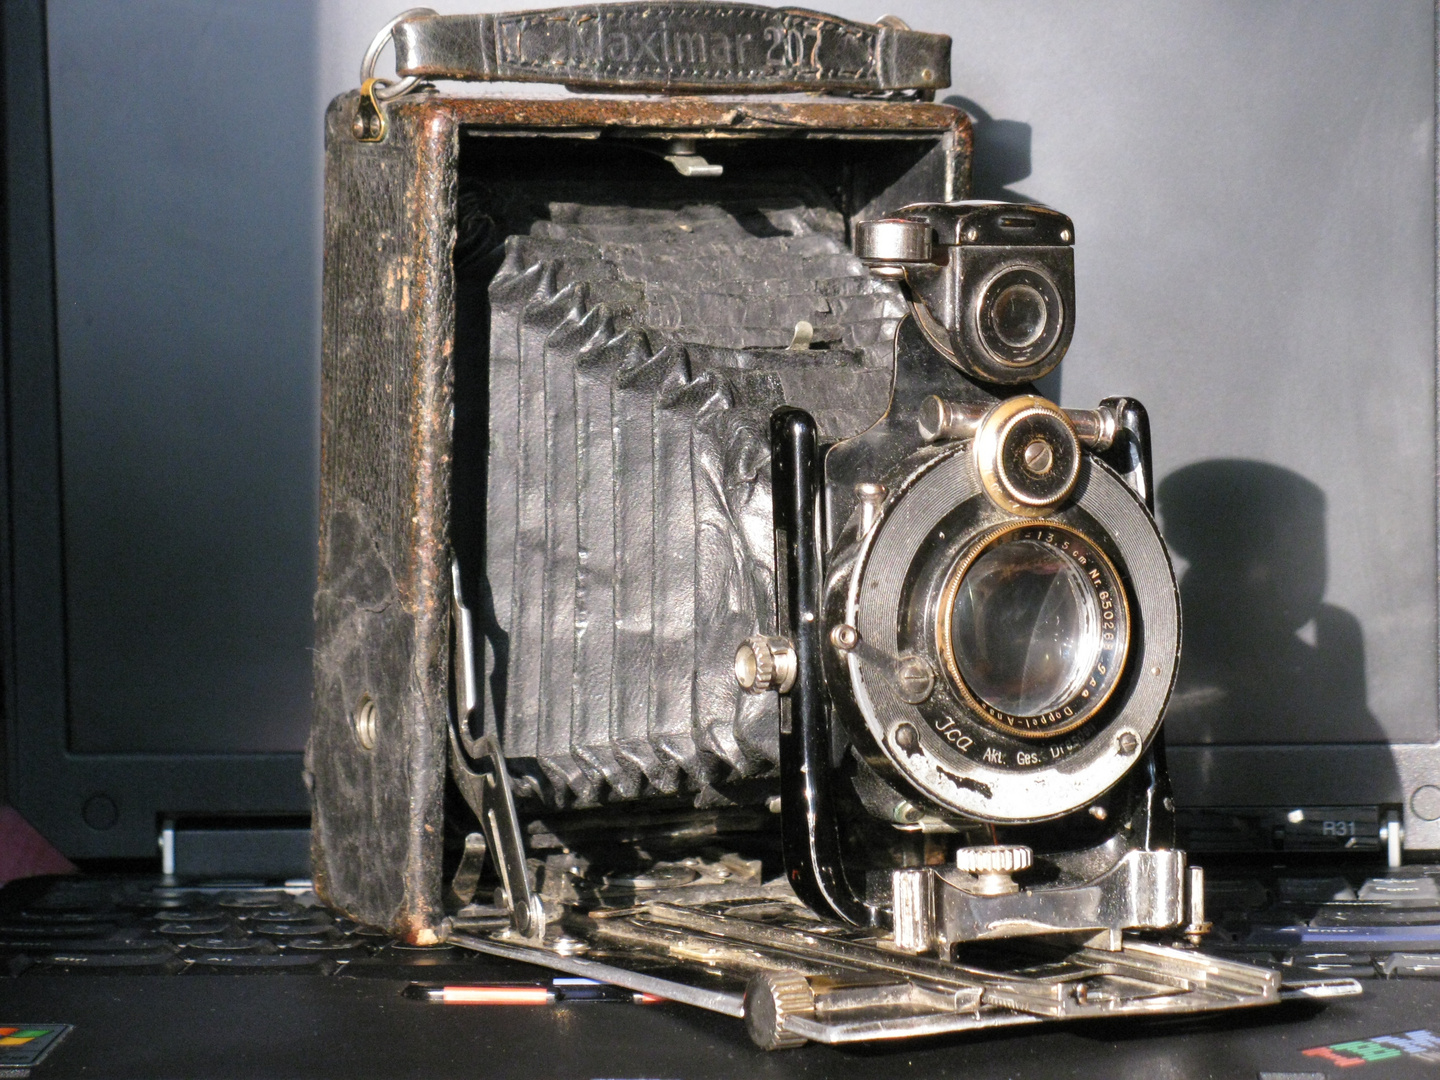 my father's camera